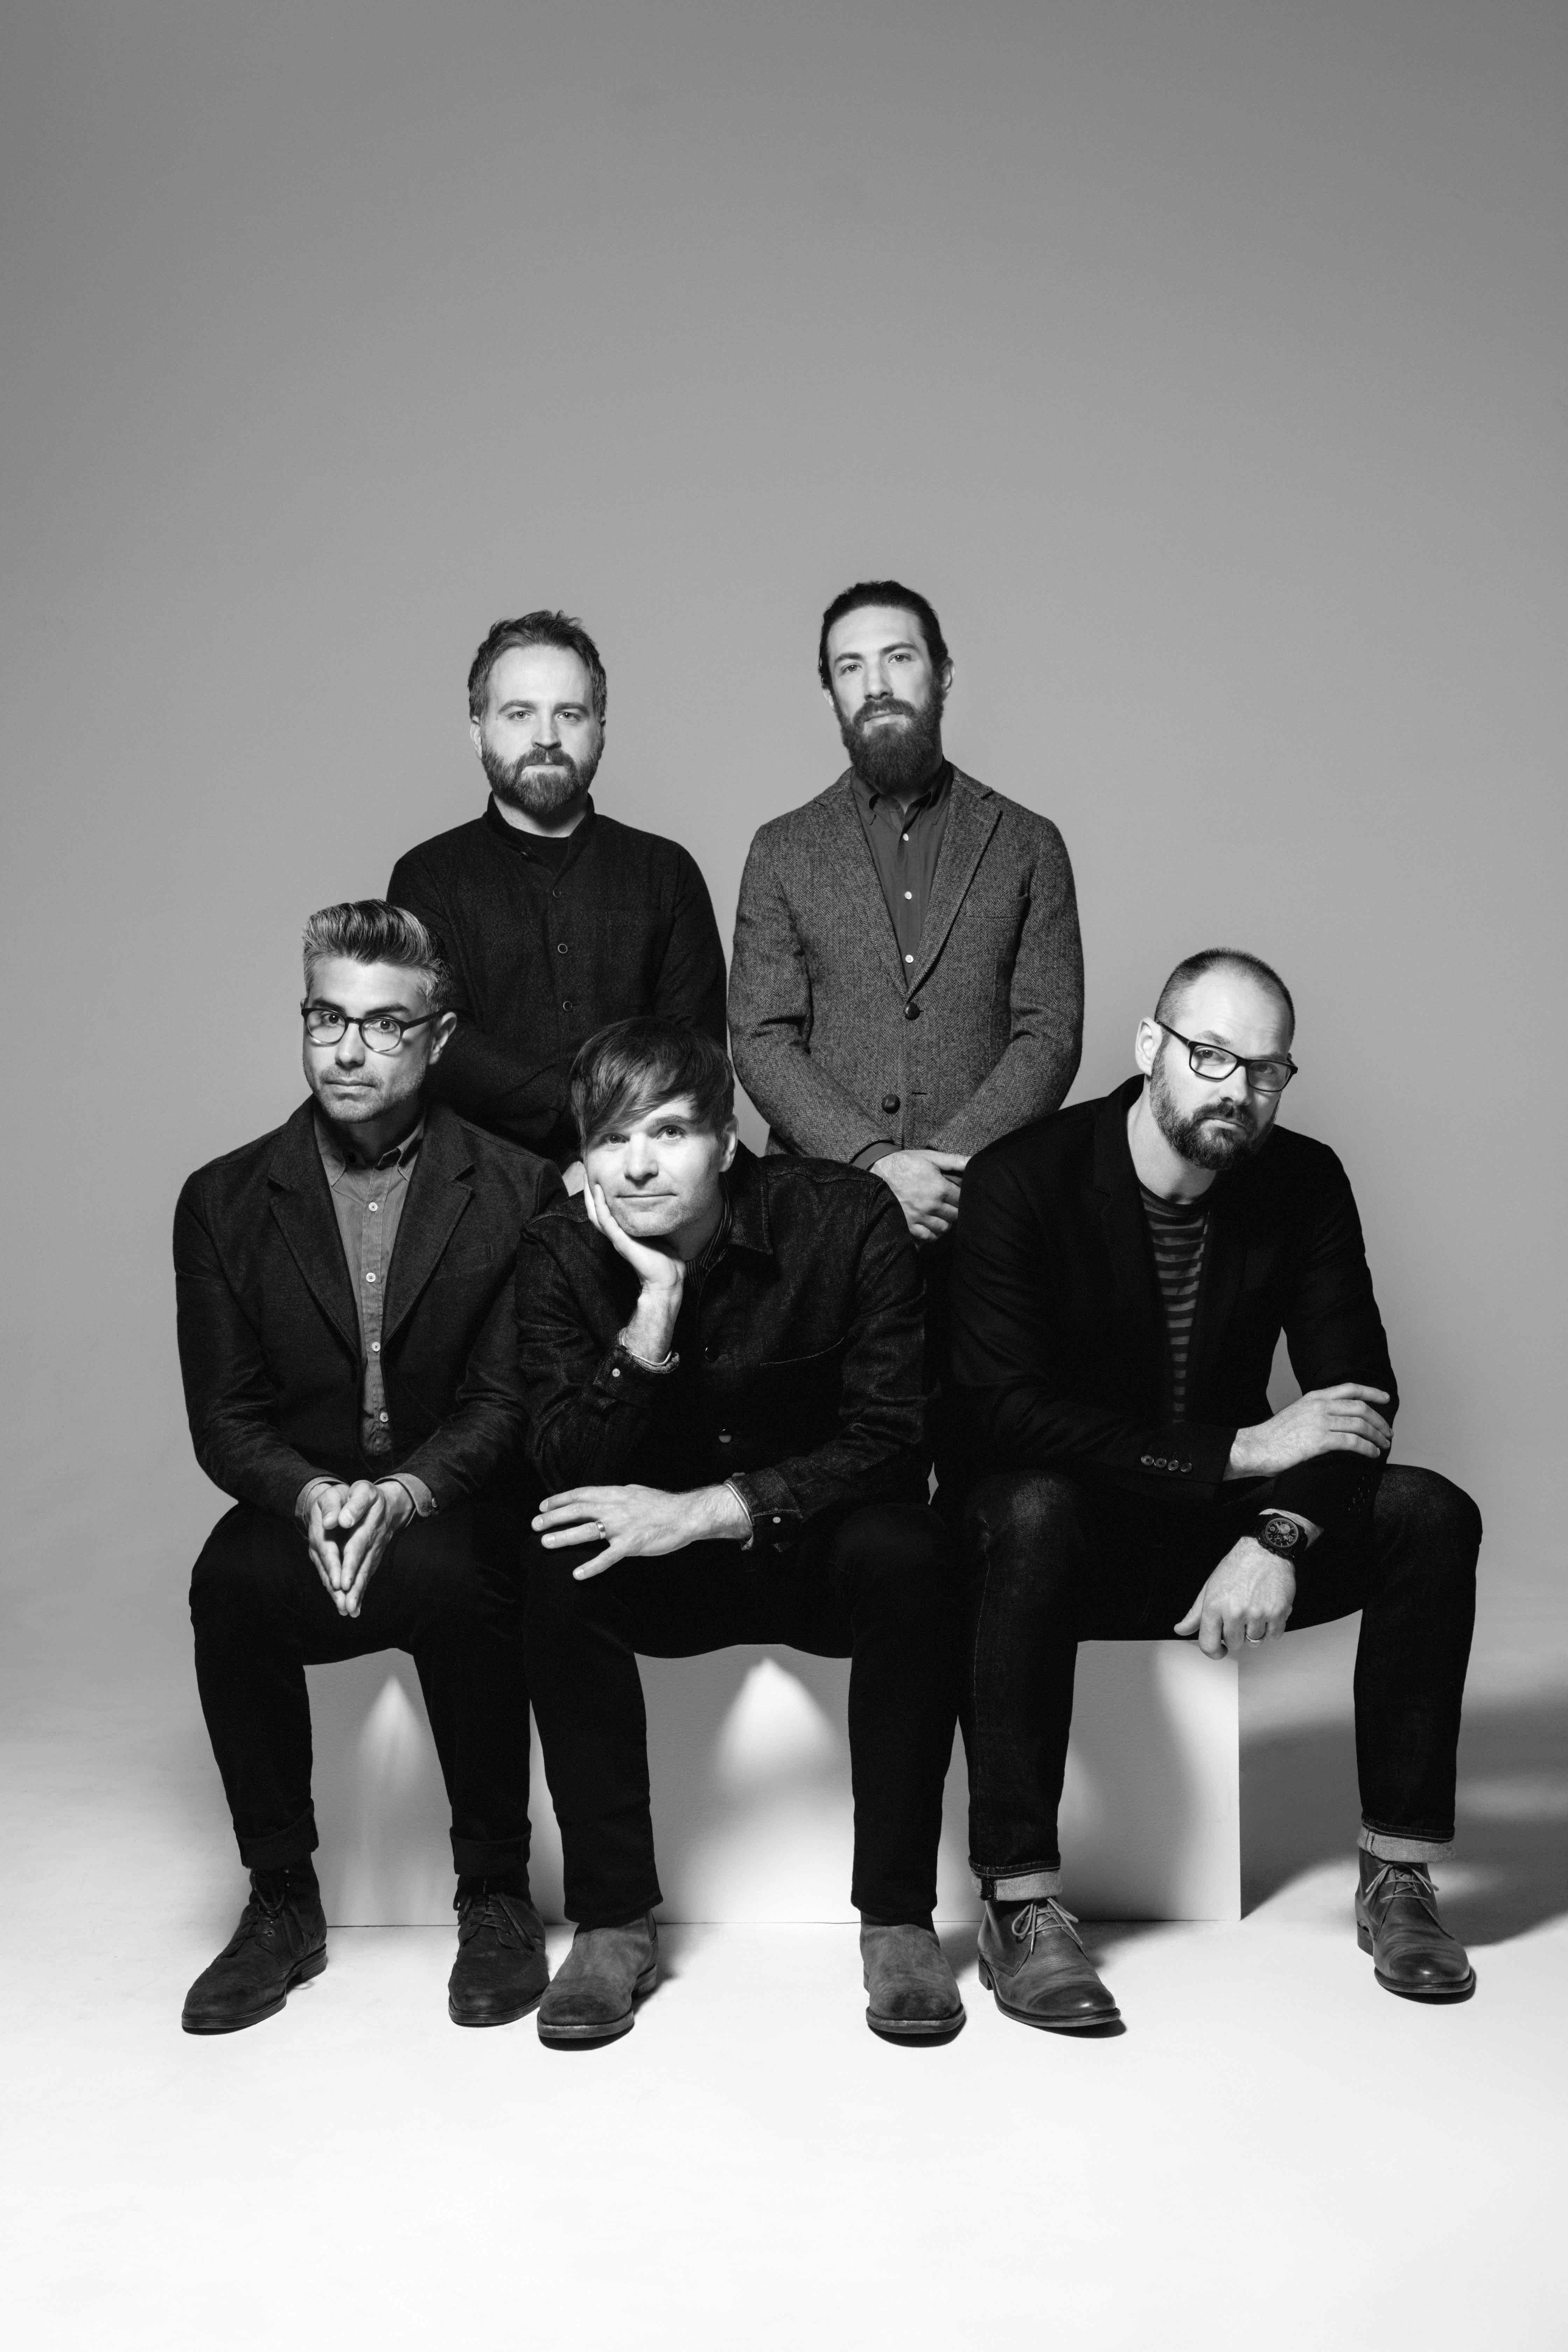 Death Cab For Cutie announce new album 'Thank You For Today' with video for 'Gold Rush'